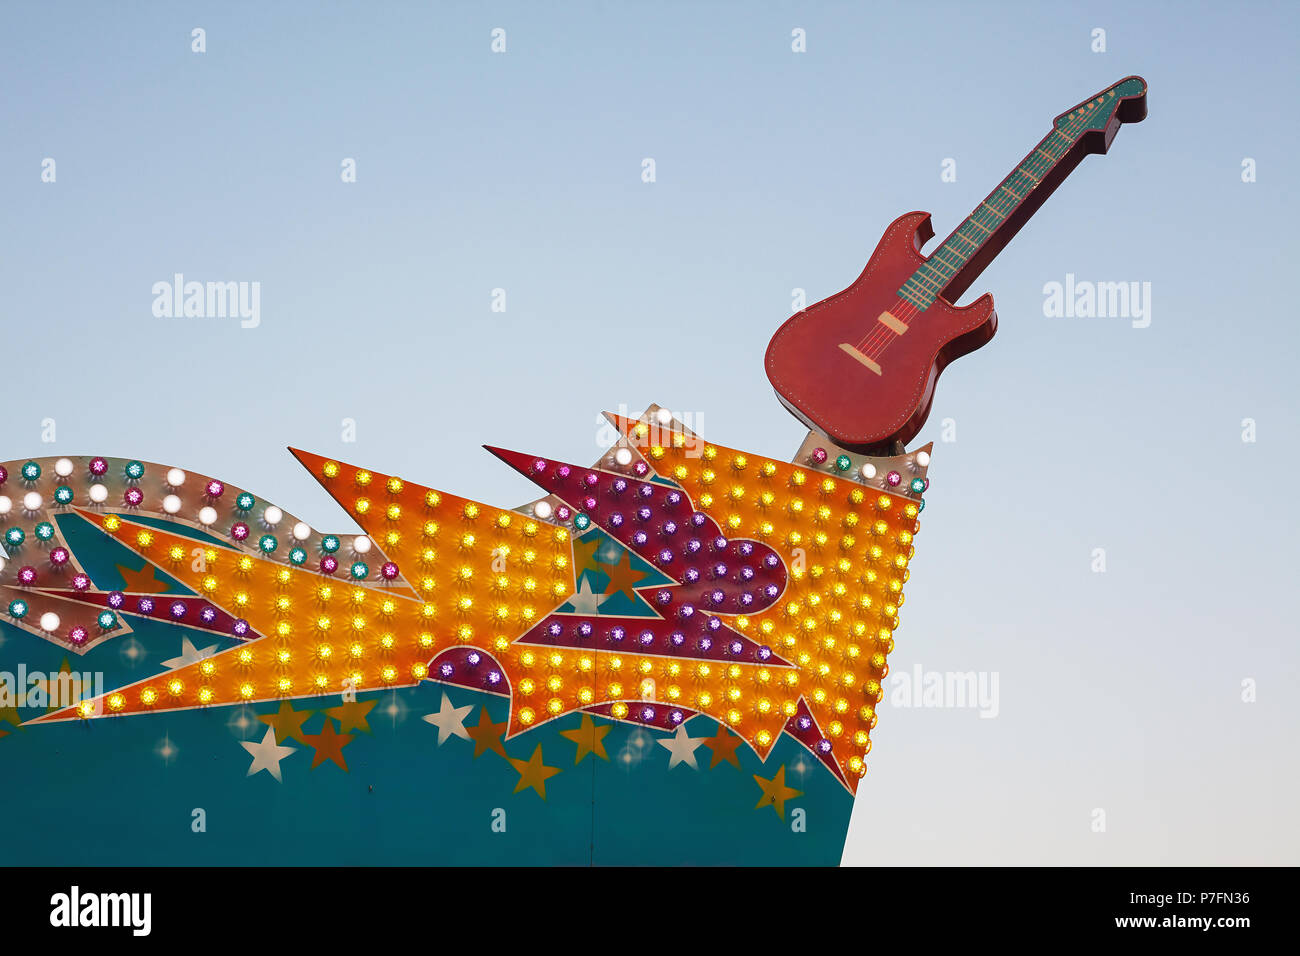 Decoration details from amusement park, electric guitar and light decor. - Stock Image